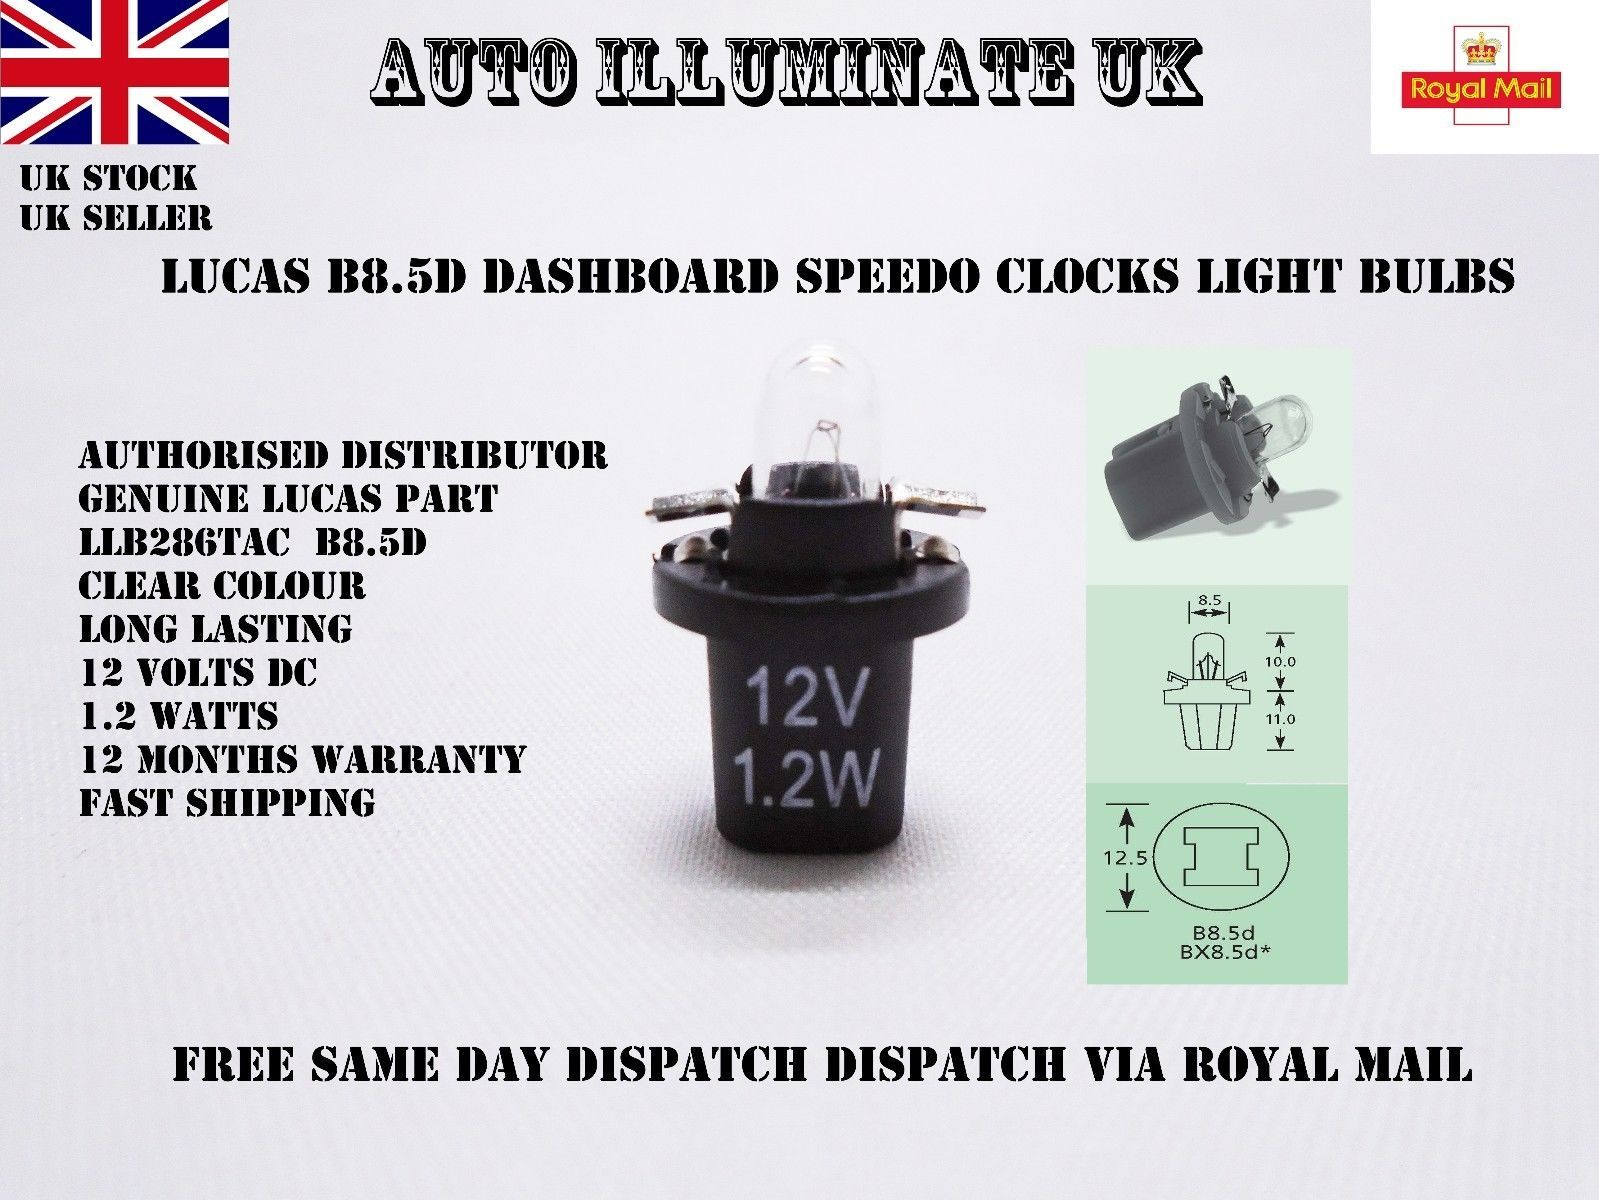 Lucas B8 5d 509t Car Bulb Gauge Instrument Panel Dash Dials Llb286tac 12v 1 2w 5012445768358 Ebay Light Bulb Lamp Bulb Lighting Suppliers